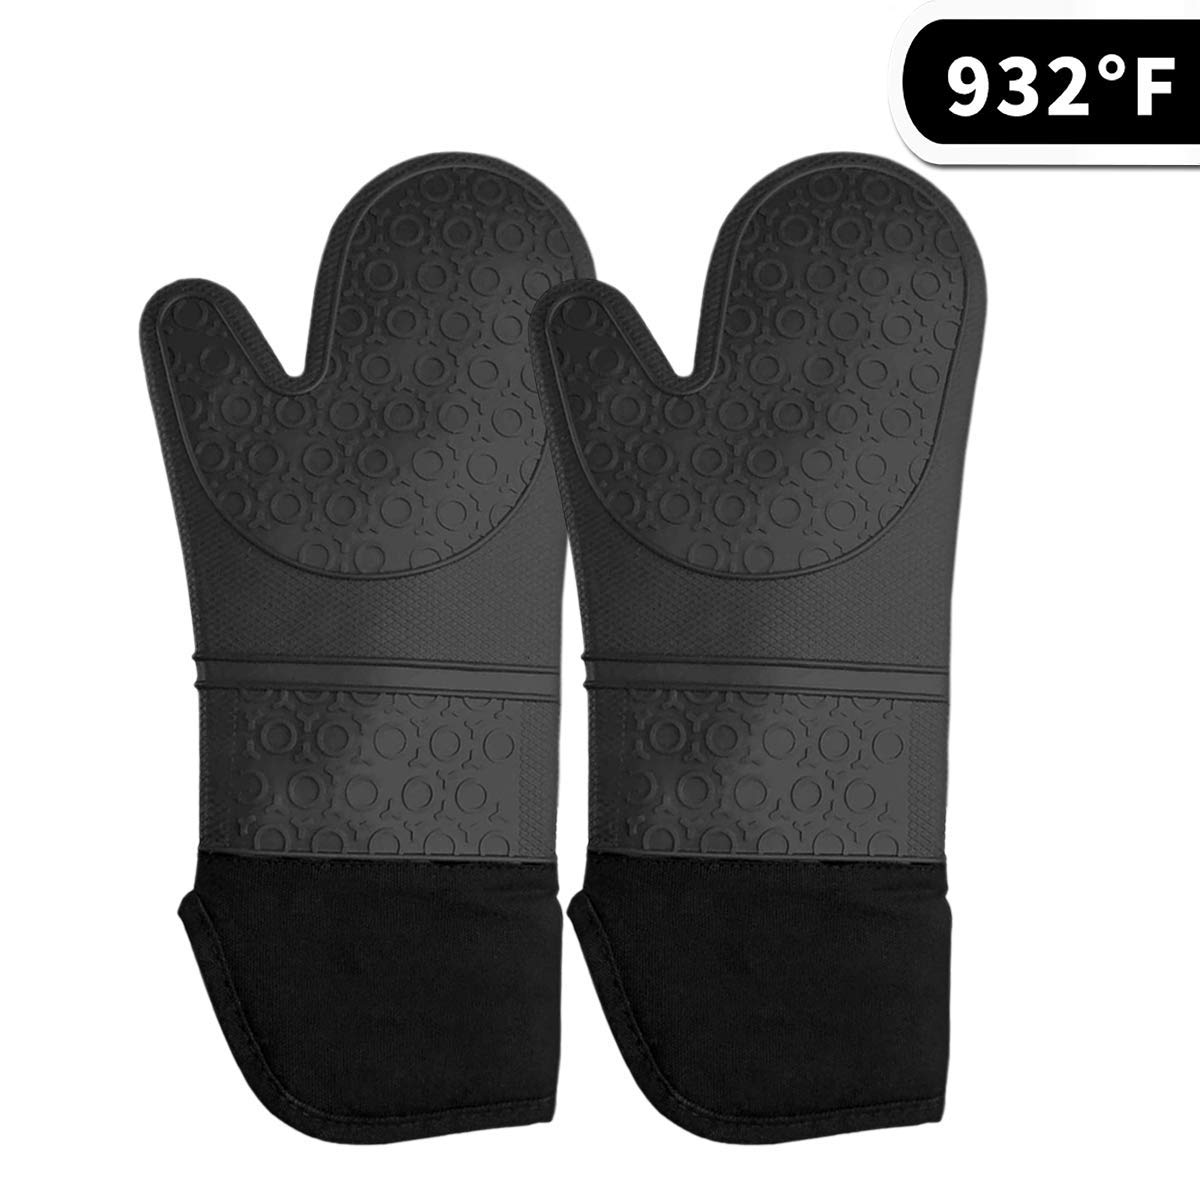 Mosteck Silicone Oven Mitts Cooking Gloves - Oven mitt with Quilted Cotton Lining Kitchen Gloves,Heat Resistant up to 500 F BBQ Oven Gloves for Potholders,Cooking Baking,Grilling,Barbecue (Black)